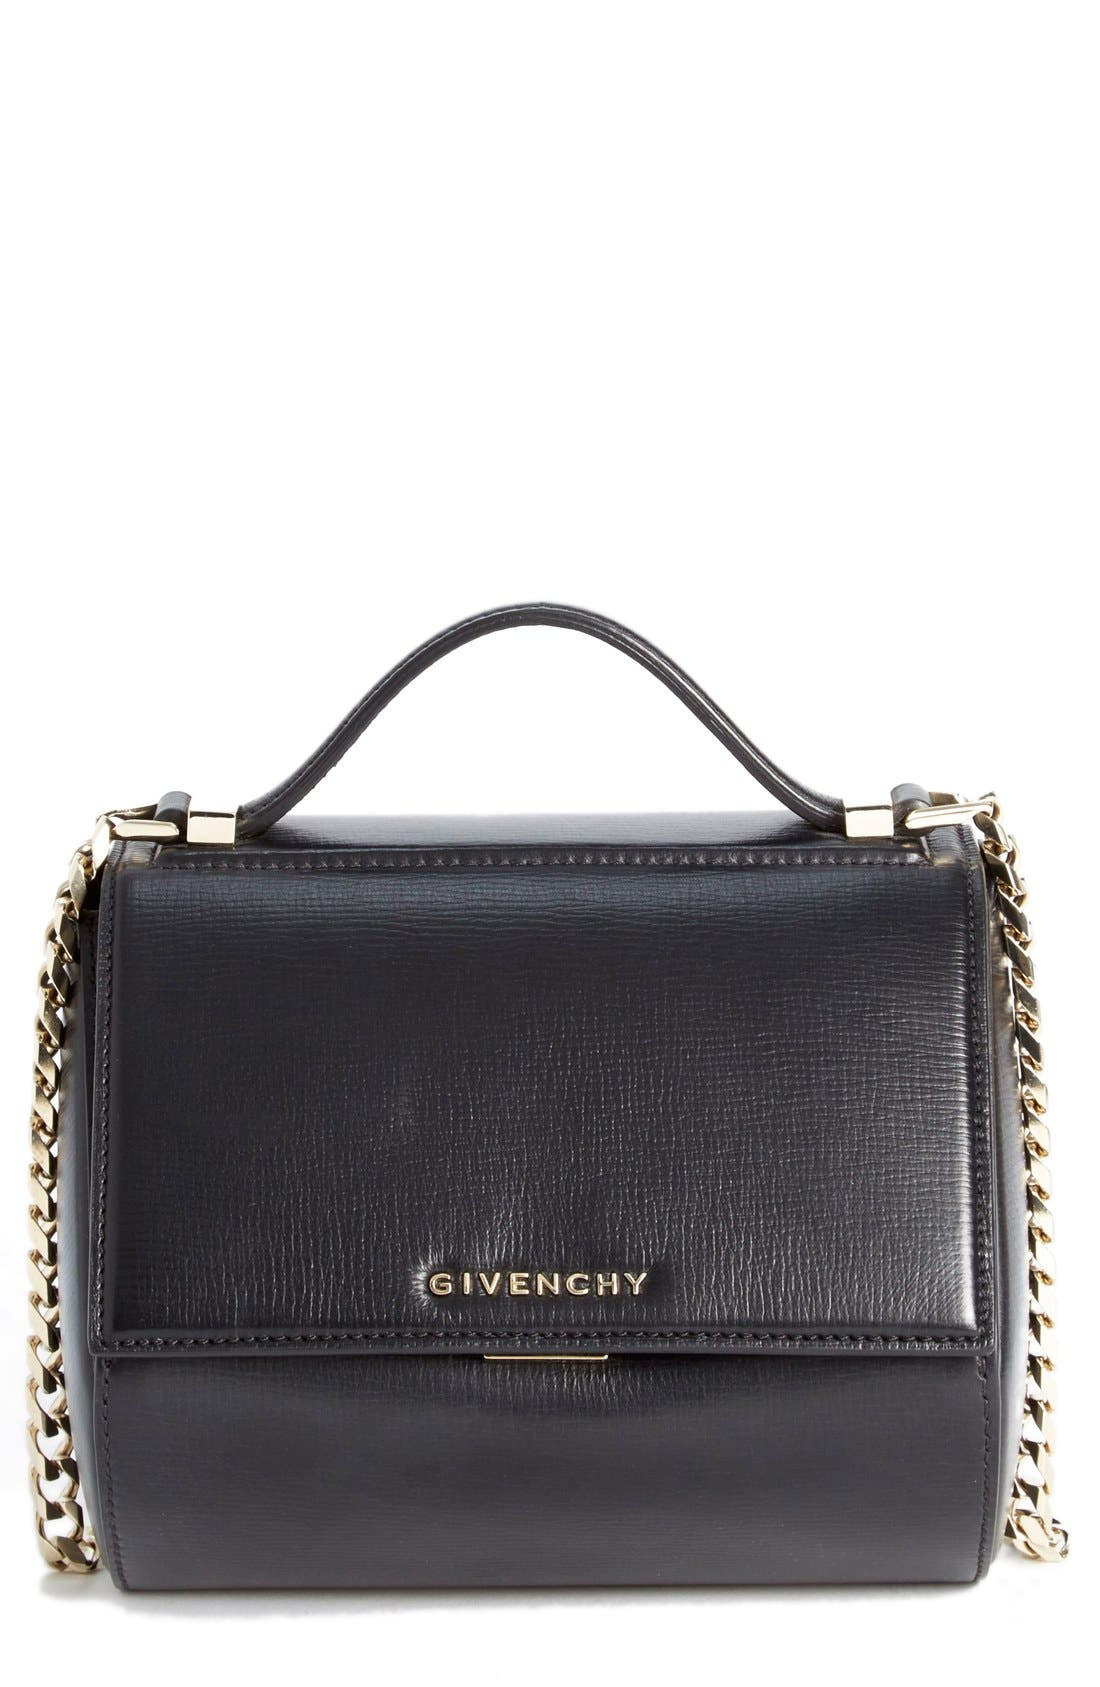 GIVENCHY 'Mini Pandora Box - Palma' Leather Shoulder